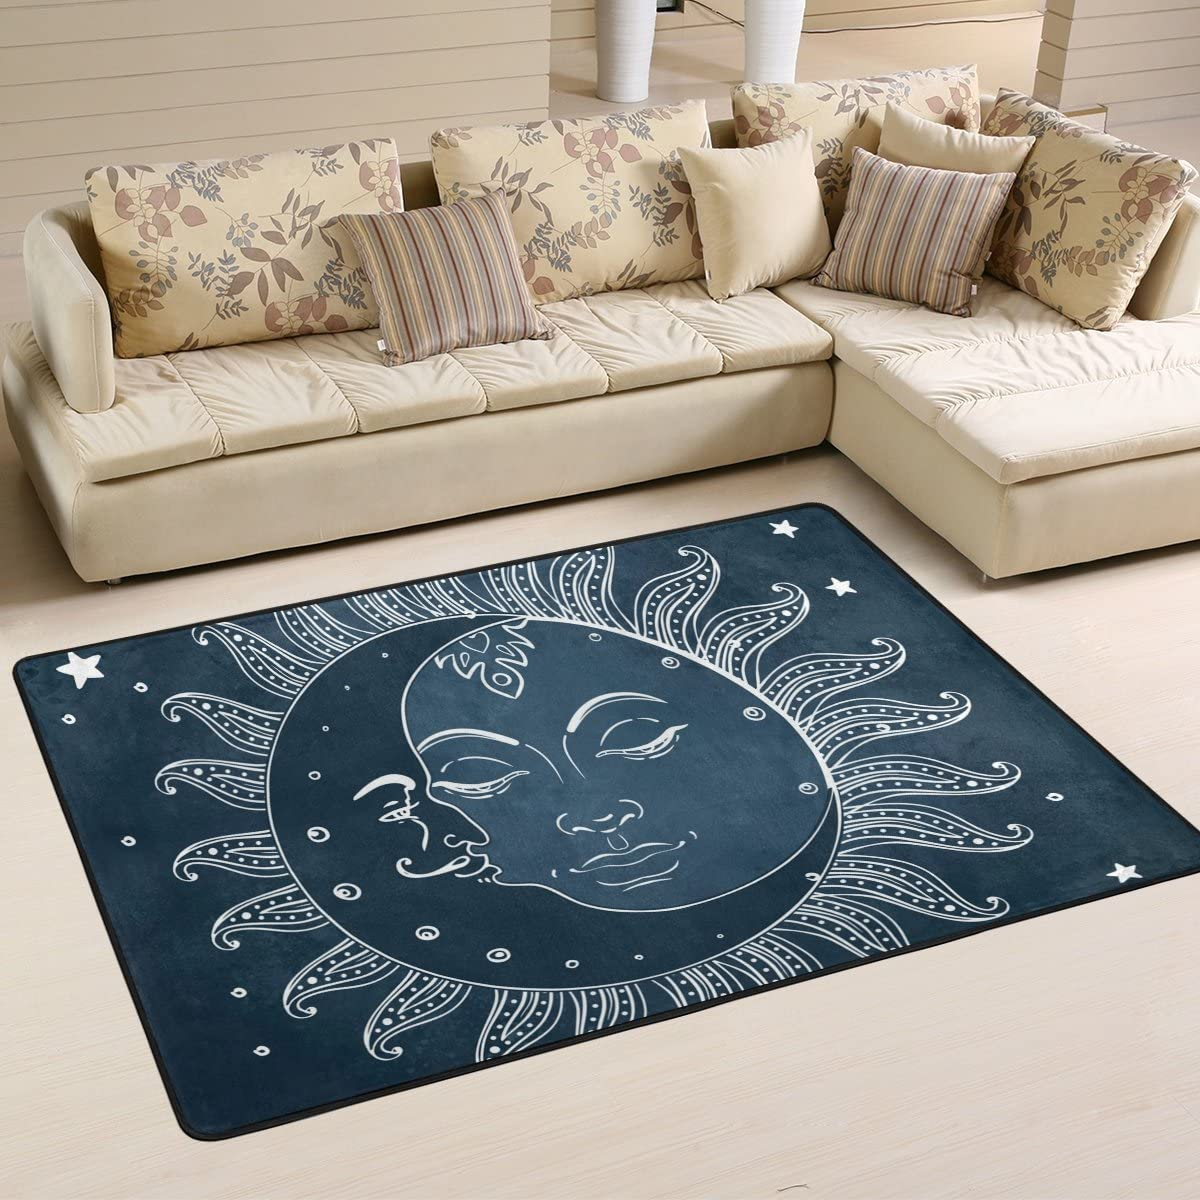 Contemporary Abstract Circle Design Multi Soft 7 10 x 10 2 Indoor Area Rug